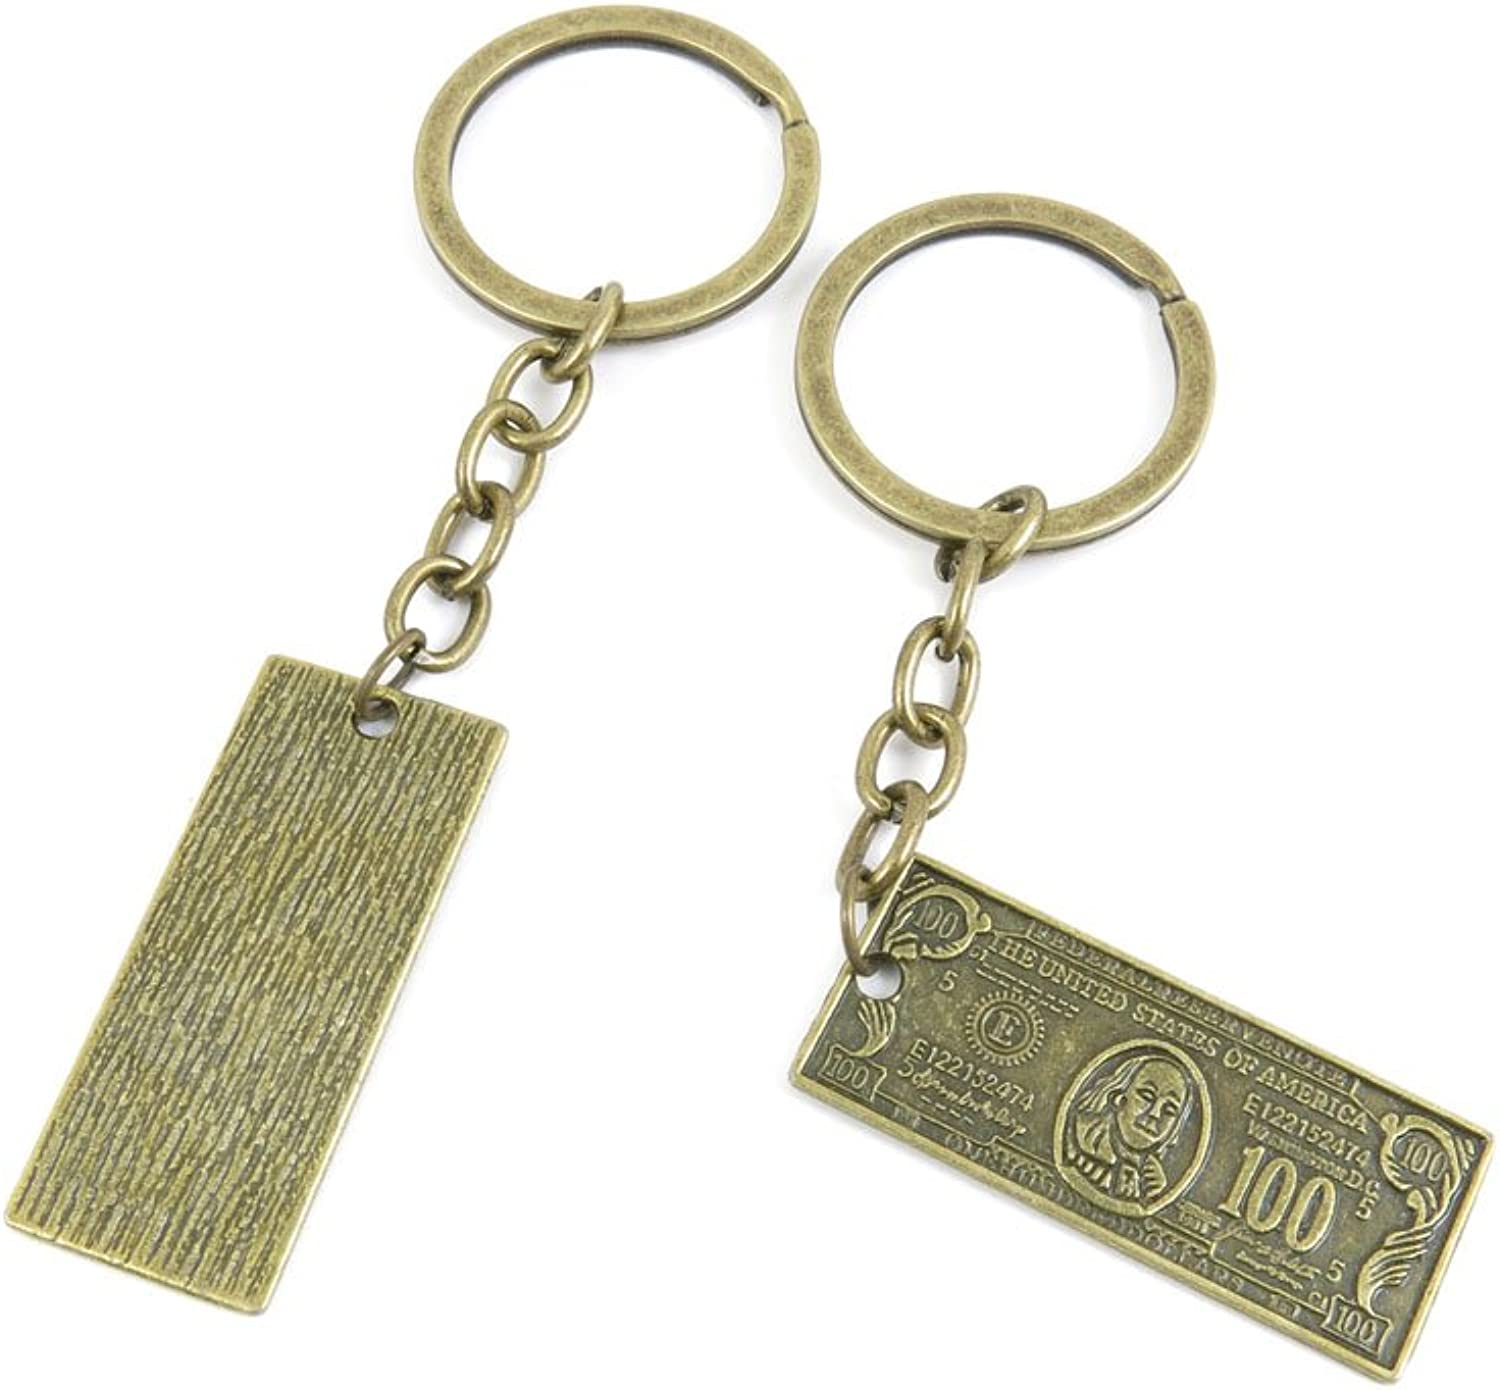 100 PCS Keyrings Keychains Key Ring Chains Tags Jewelry Findings Clasps Buckles Supplies M1UF0 100 Dollar